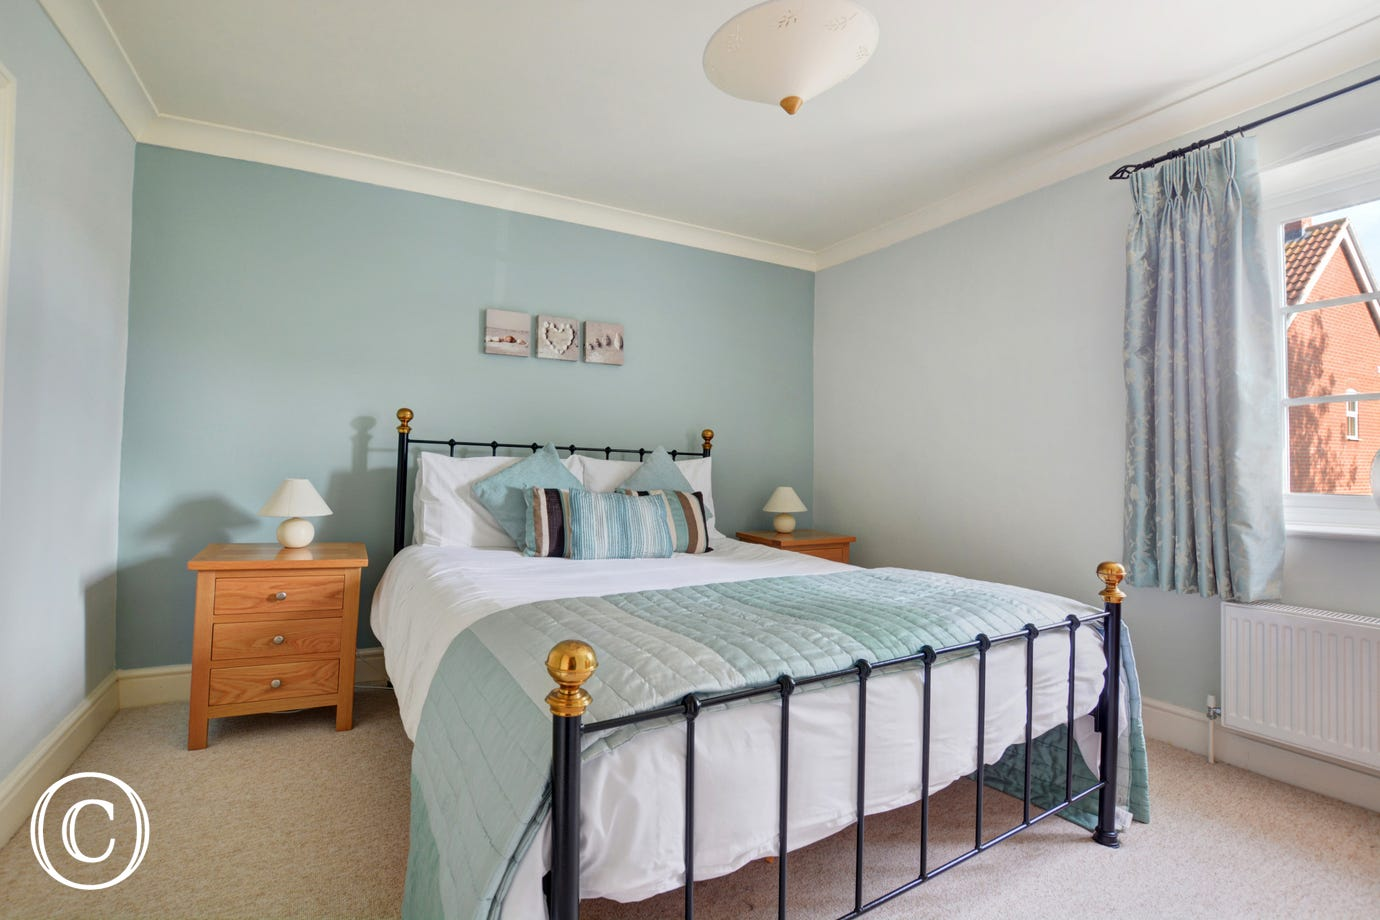 Beautifully decorated bedroom with a king size bed